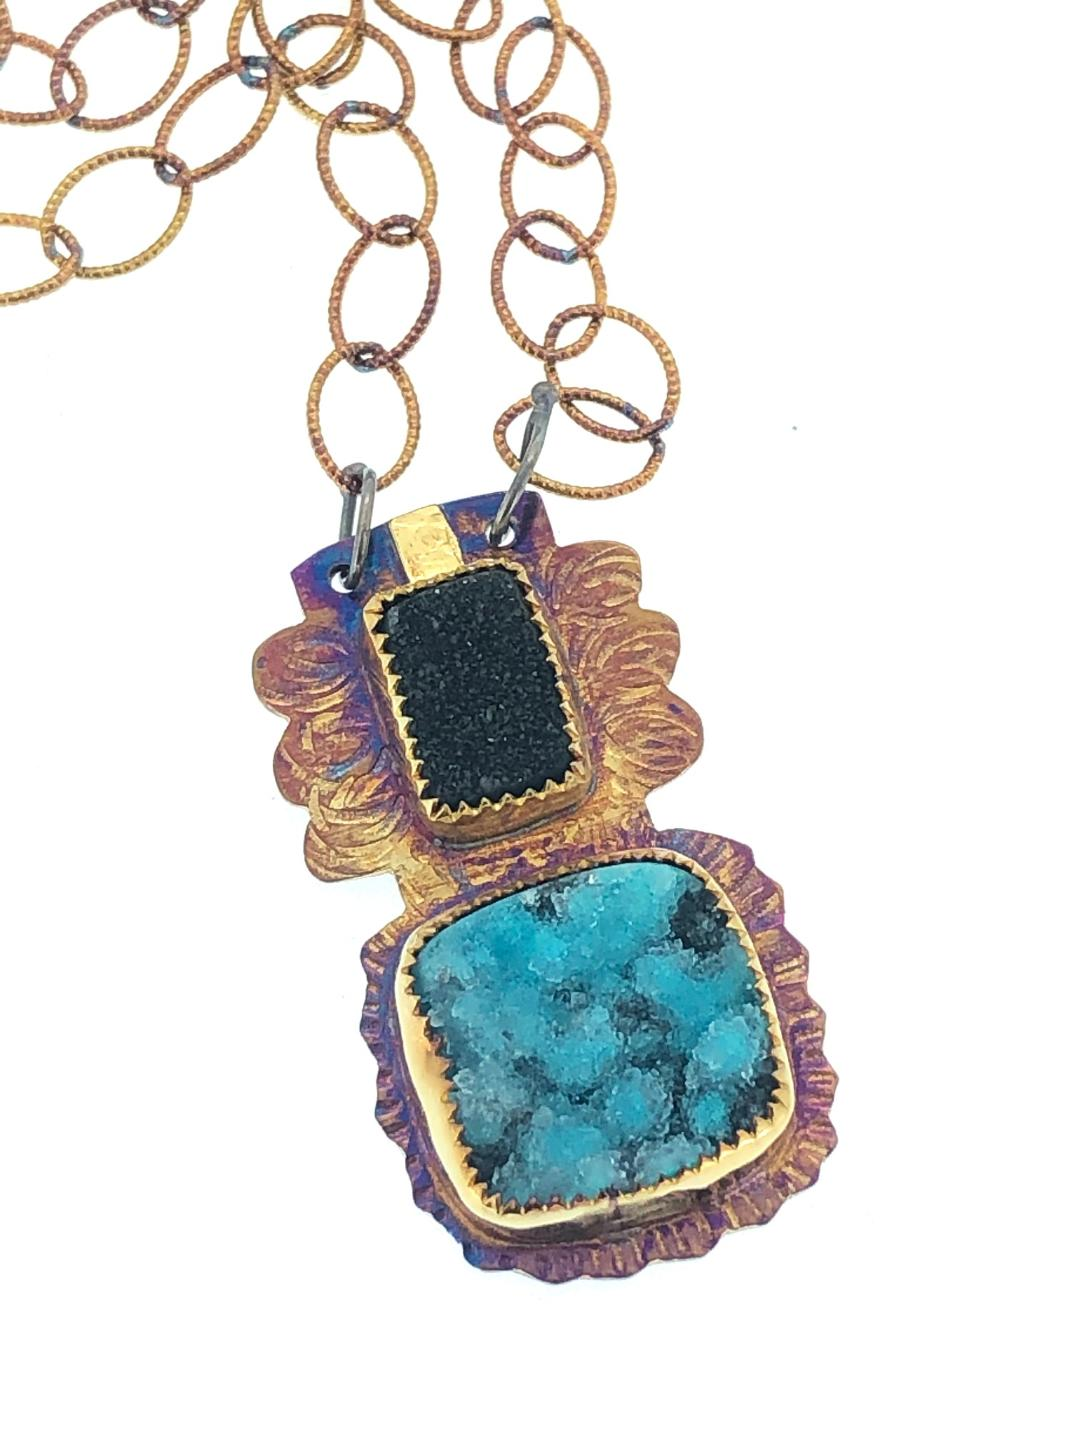 Blue and Black Necklace in s/s,22k gold, black quartz druzy and chrysocolla druzy.  Chain 21